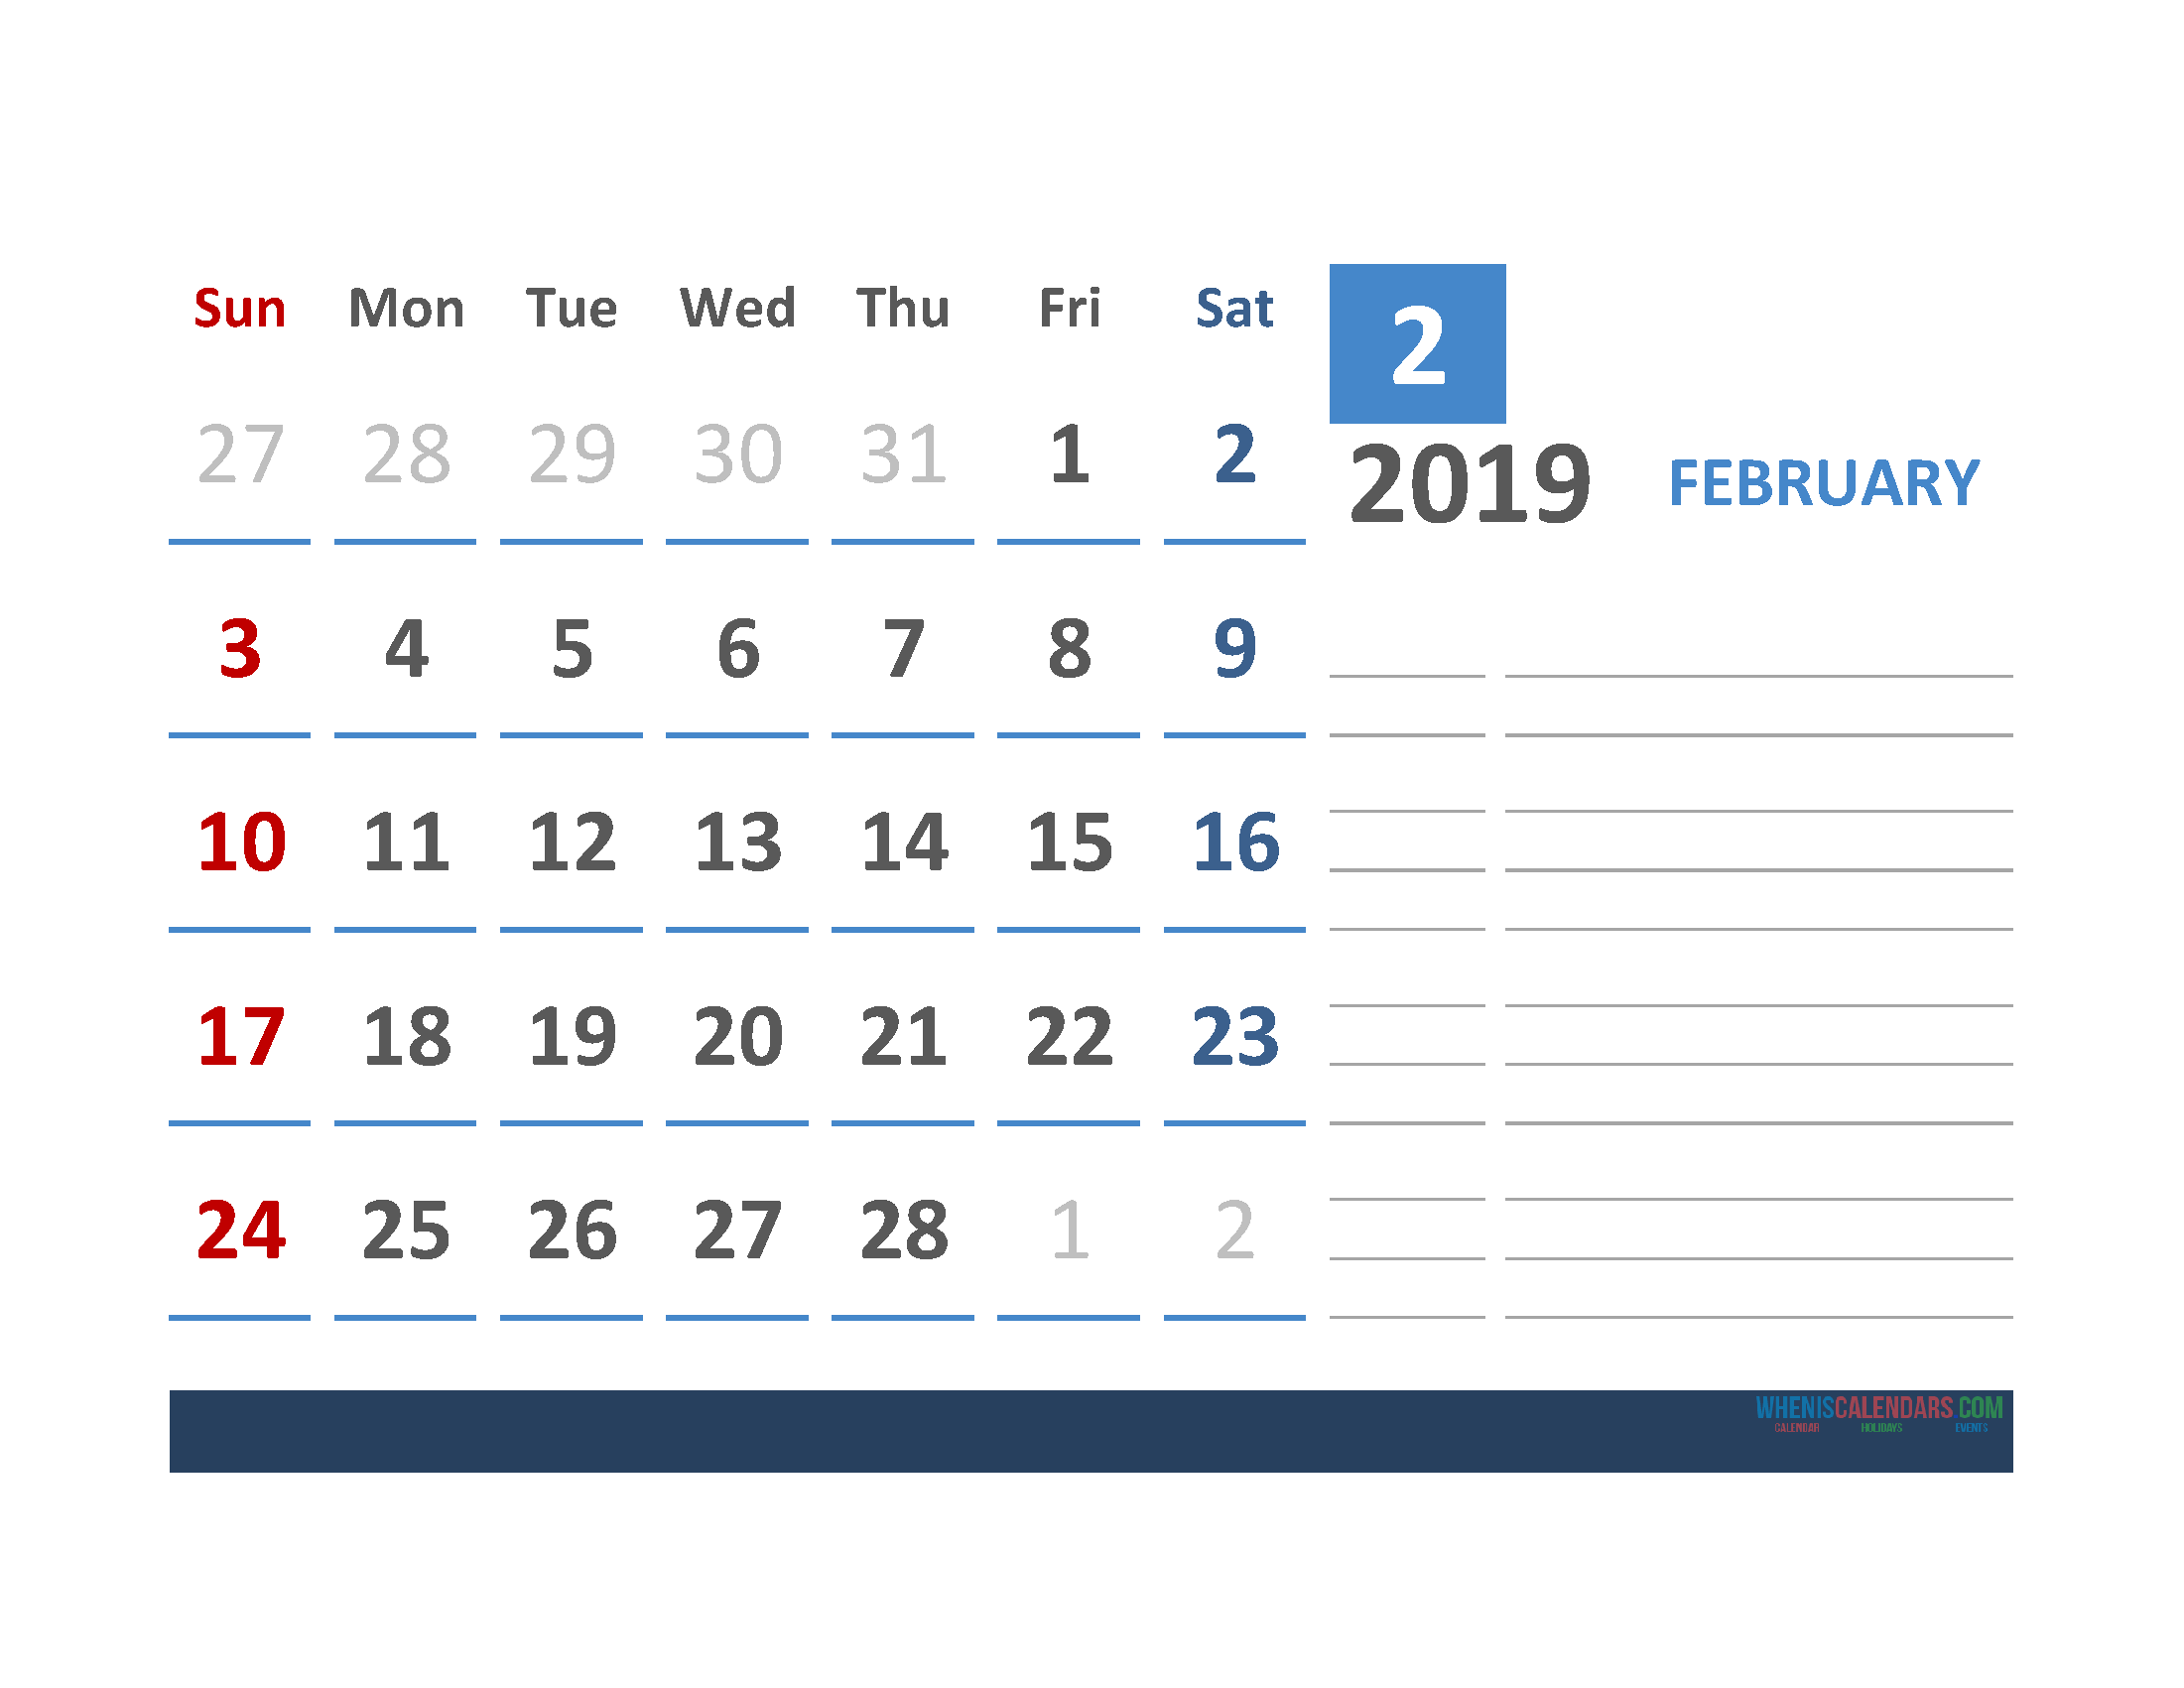 Free February 2019 Calendar Template With Space for Notes